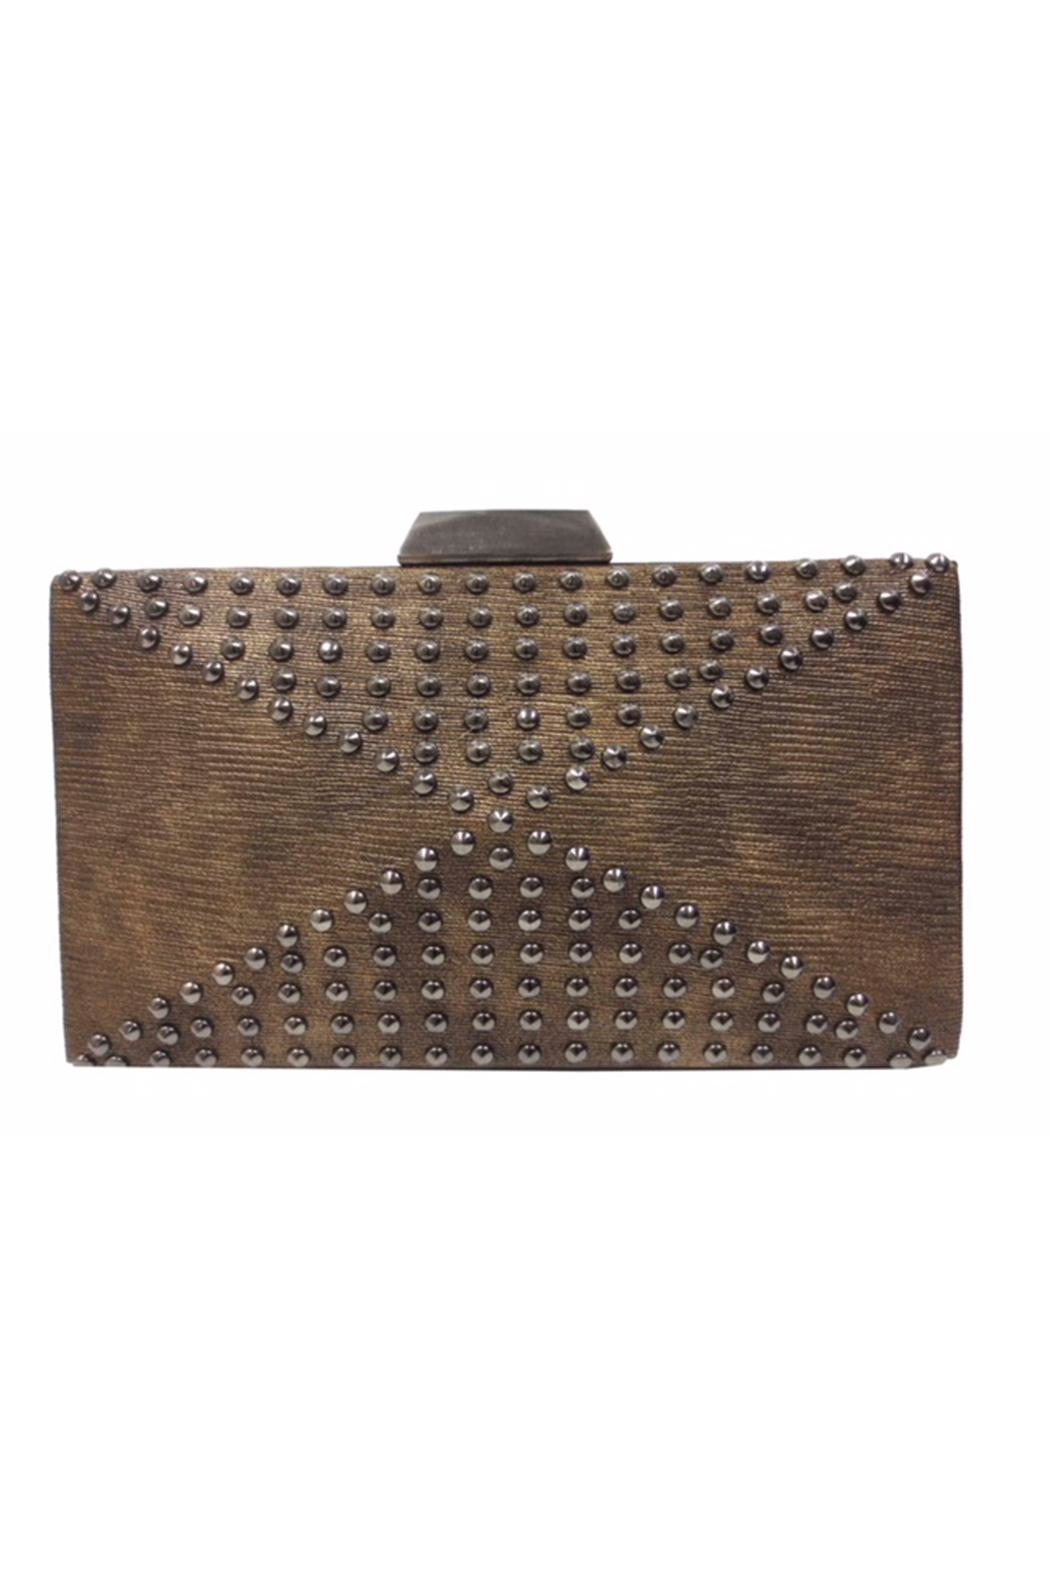 Sondra Roberts Studded Evening Clutch - Front Cropped Image